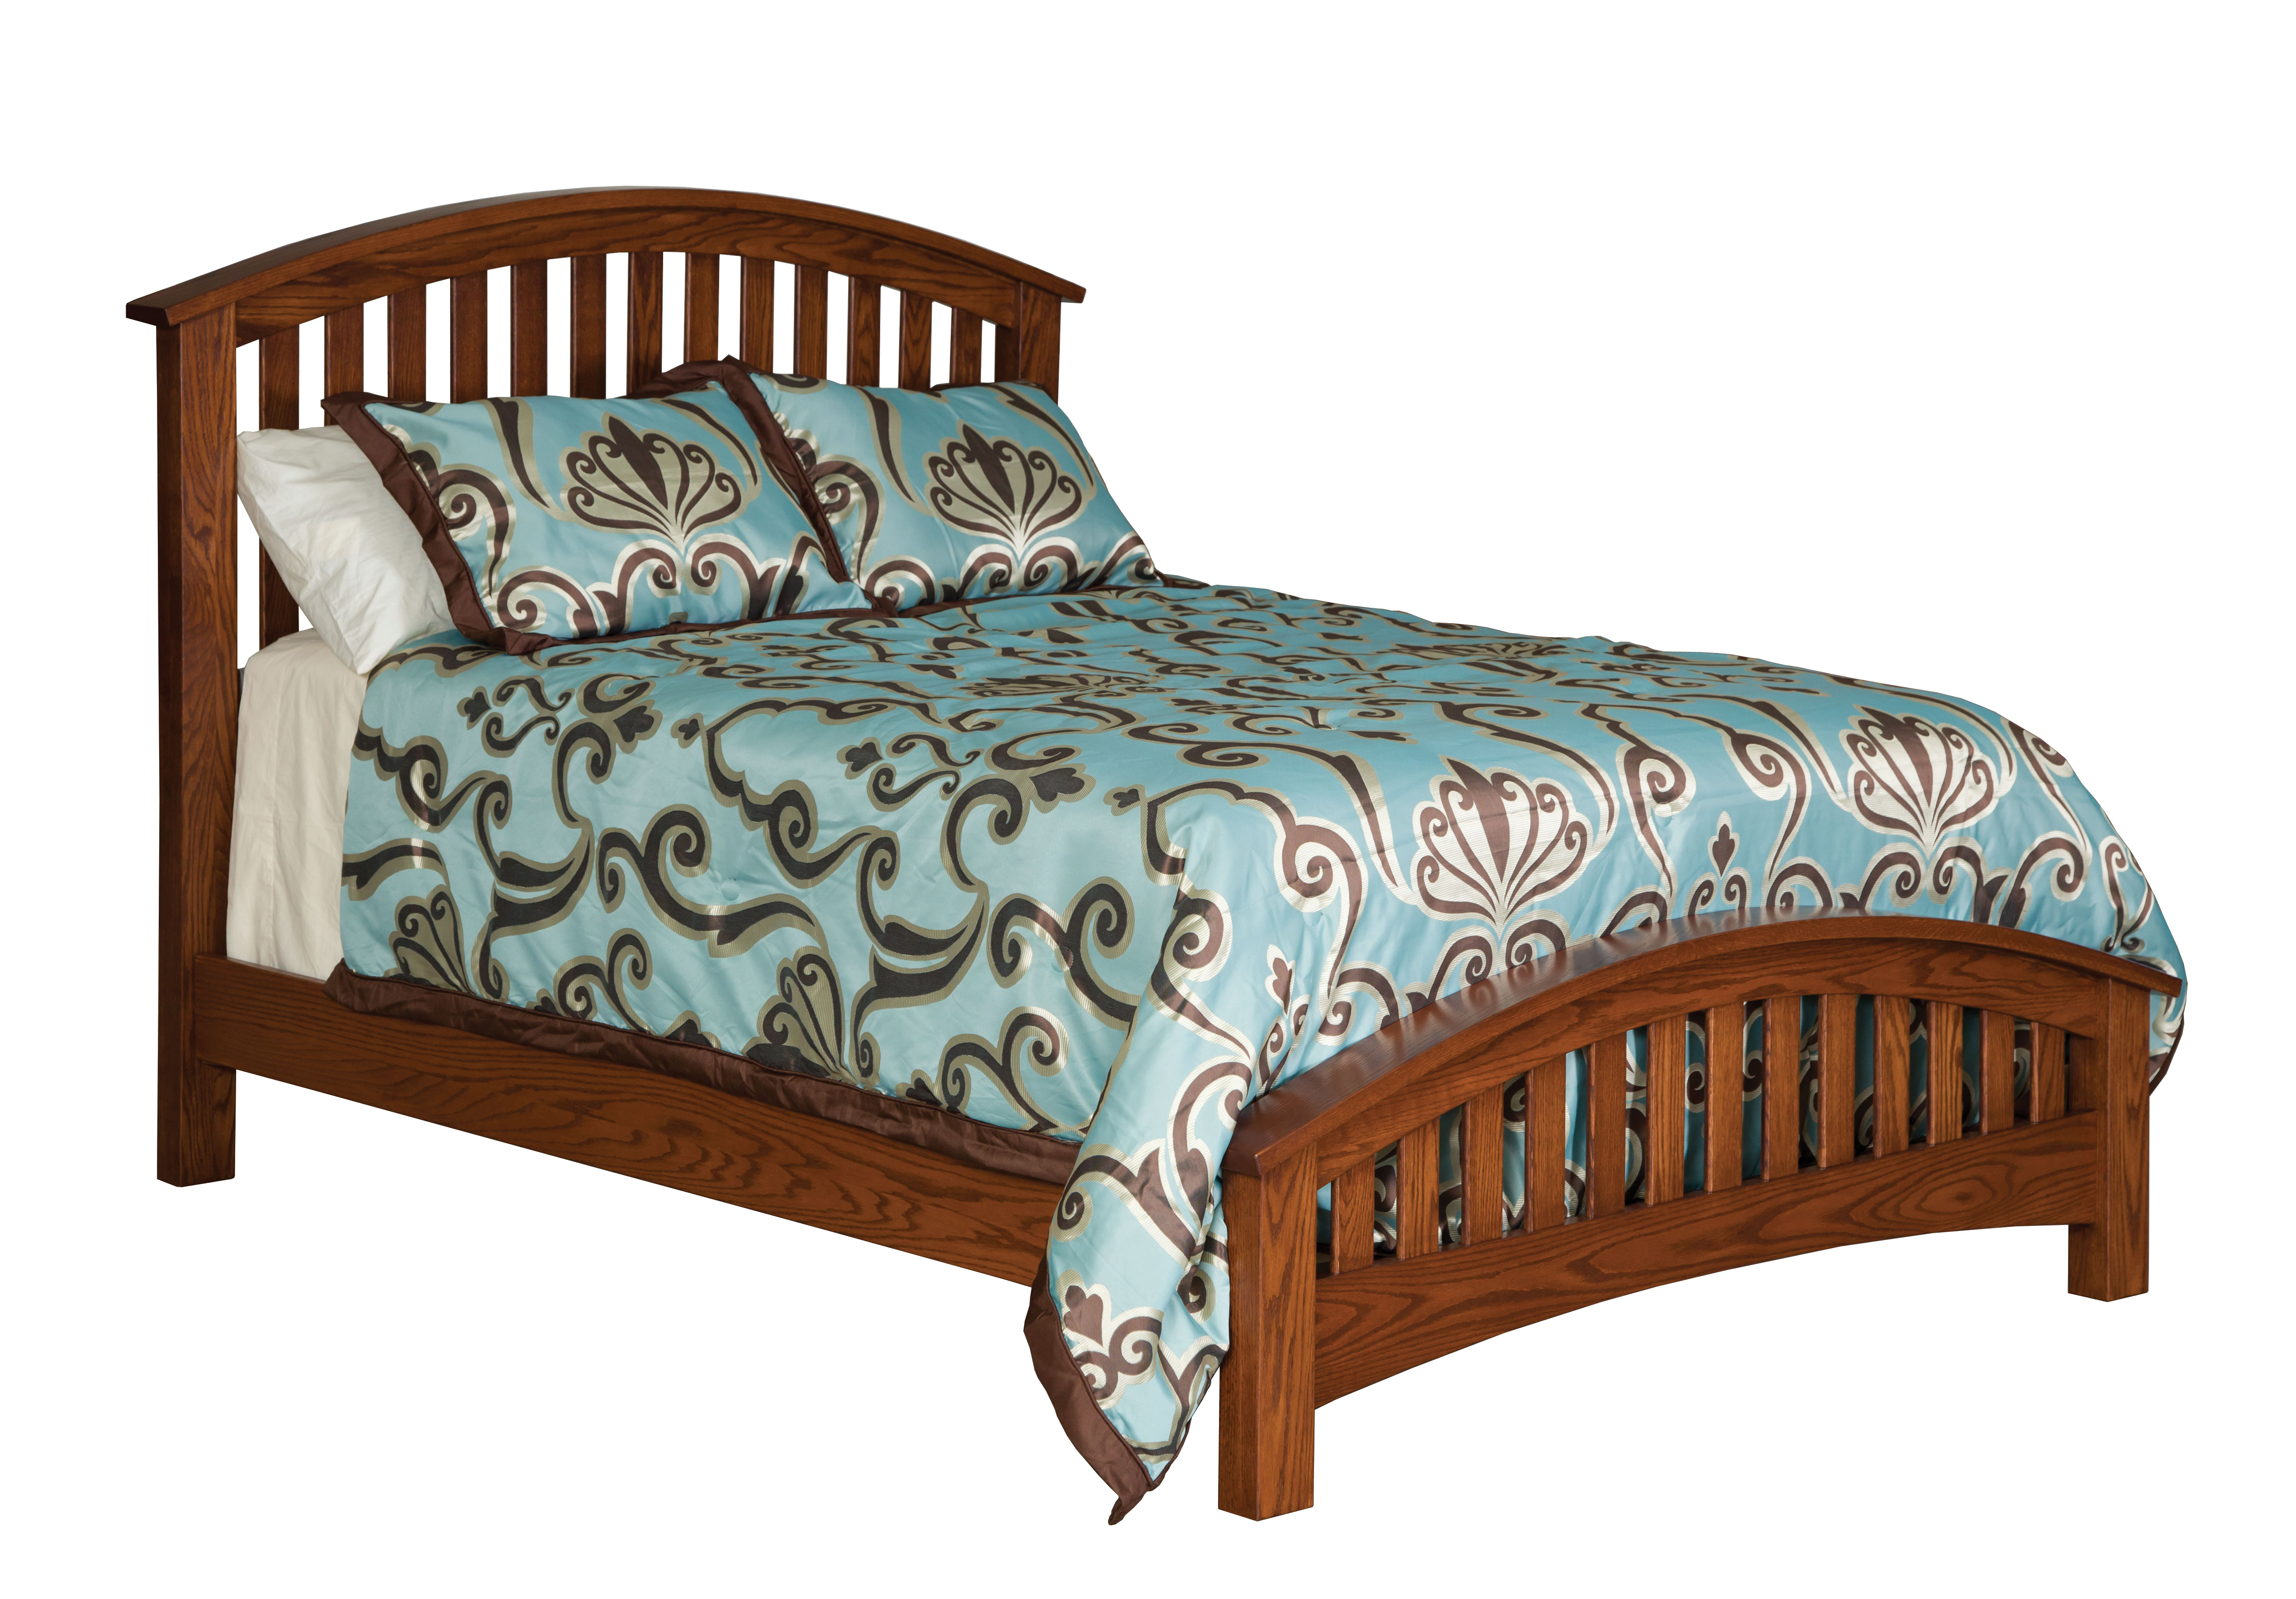 Buckeye economy slat bed amish valley products for Amish furniture home of economy